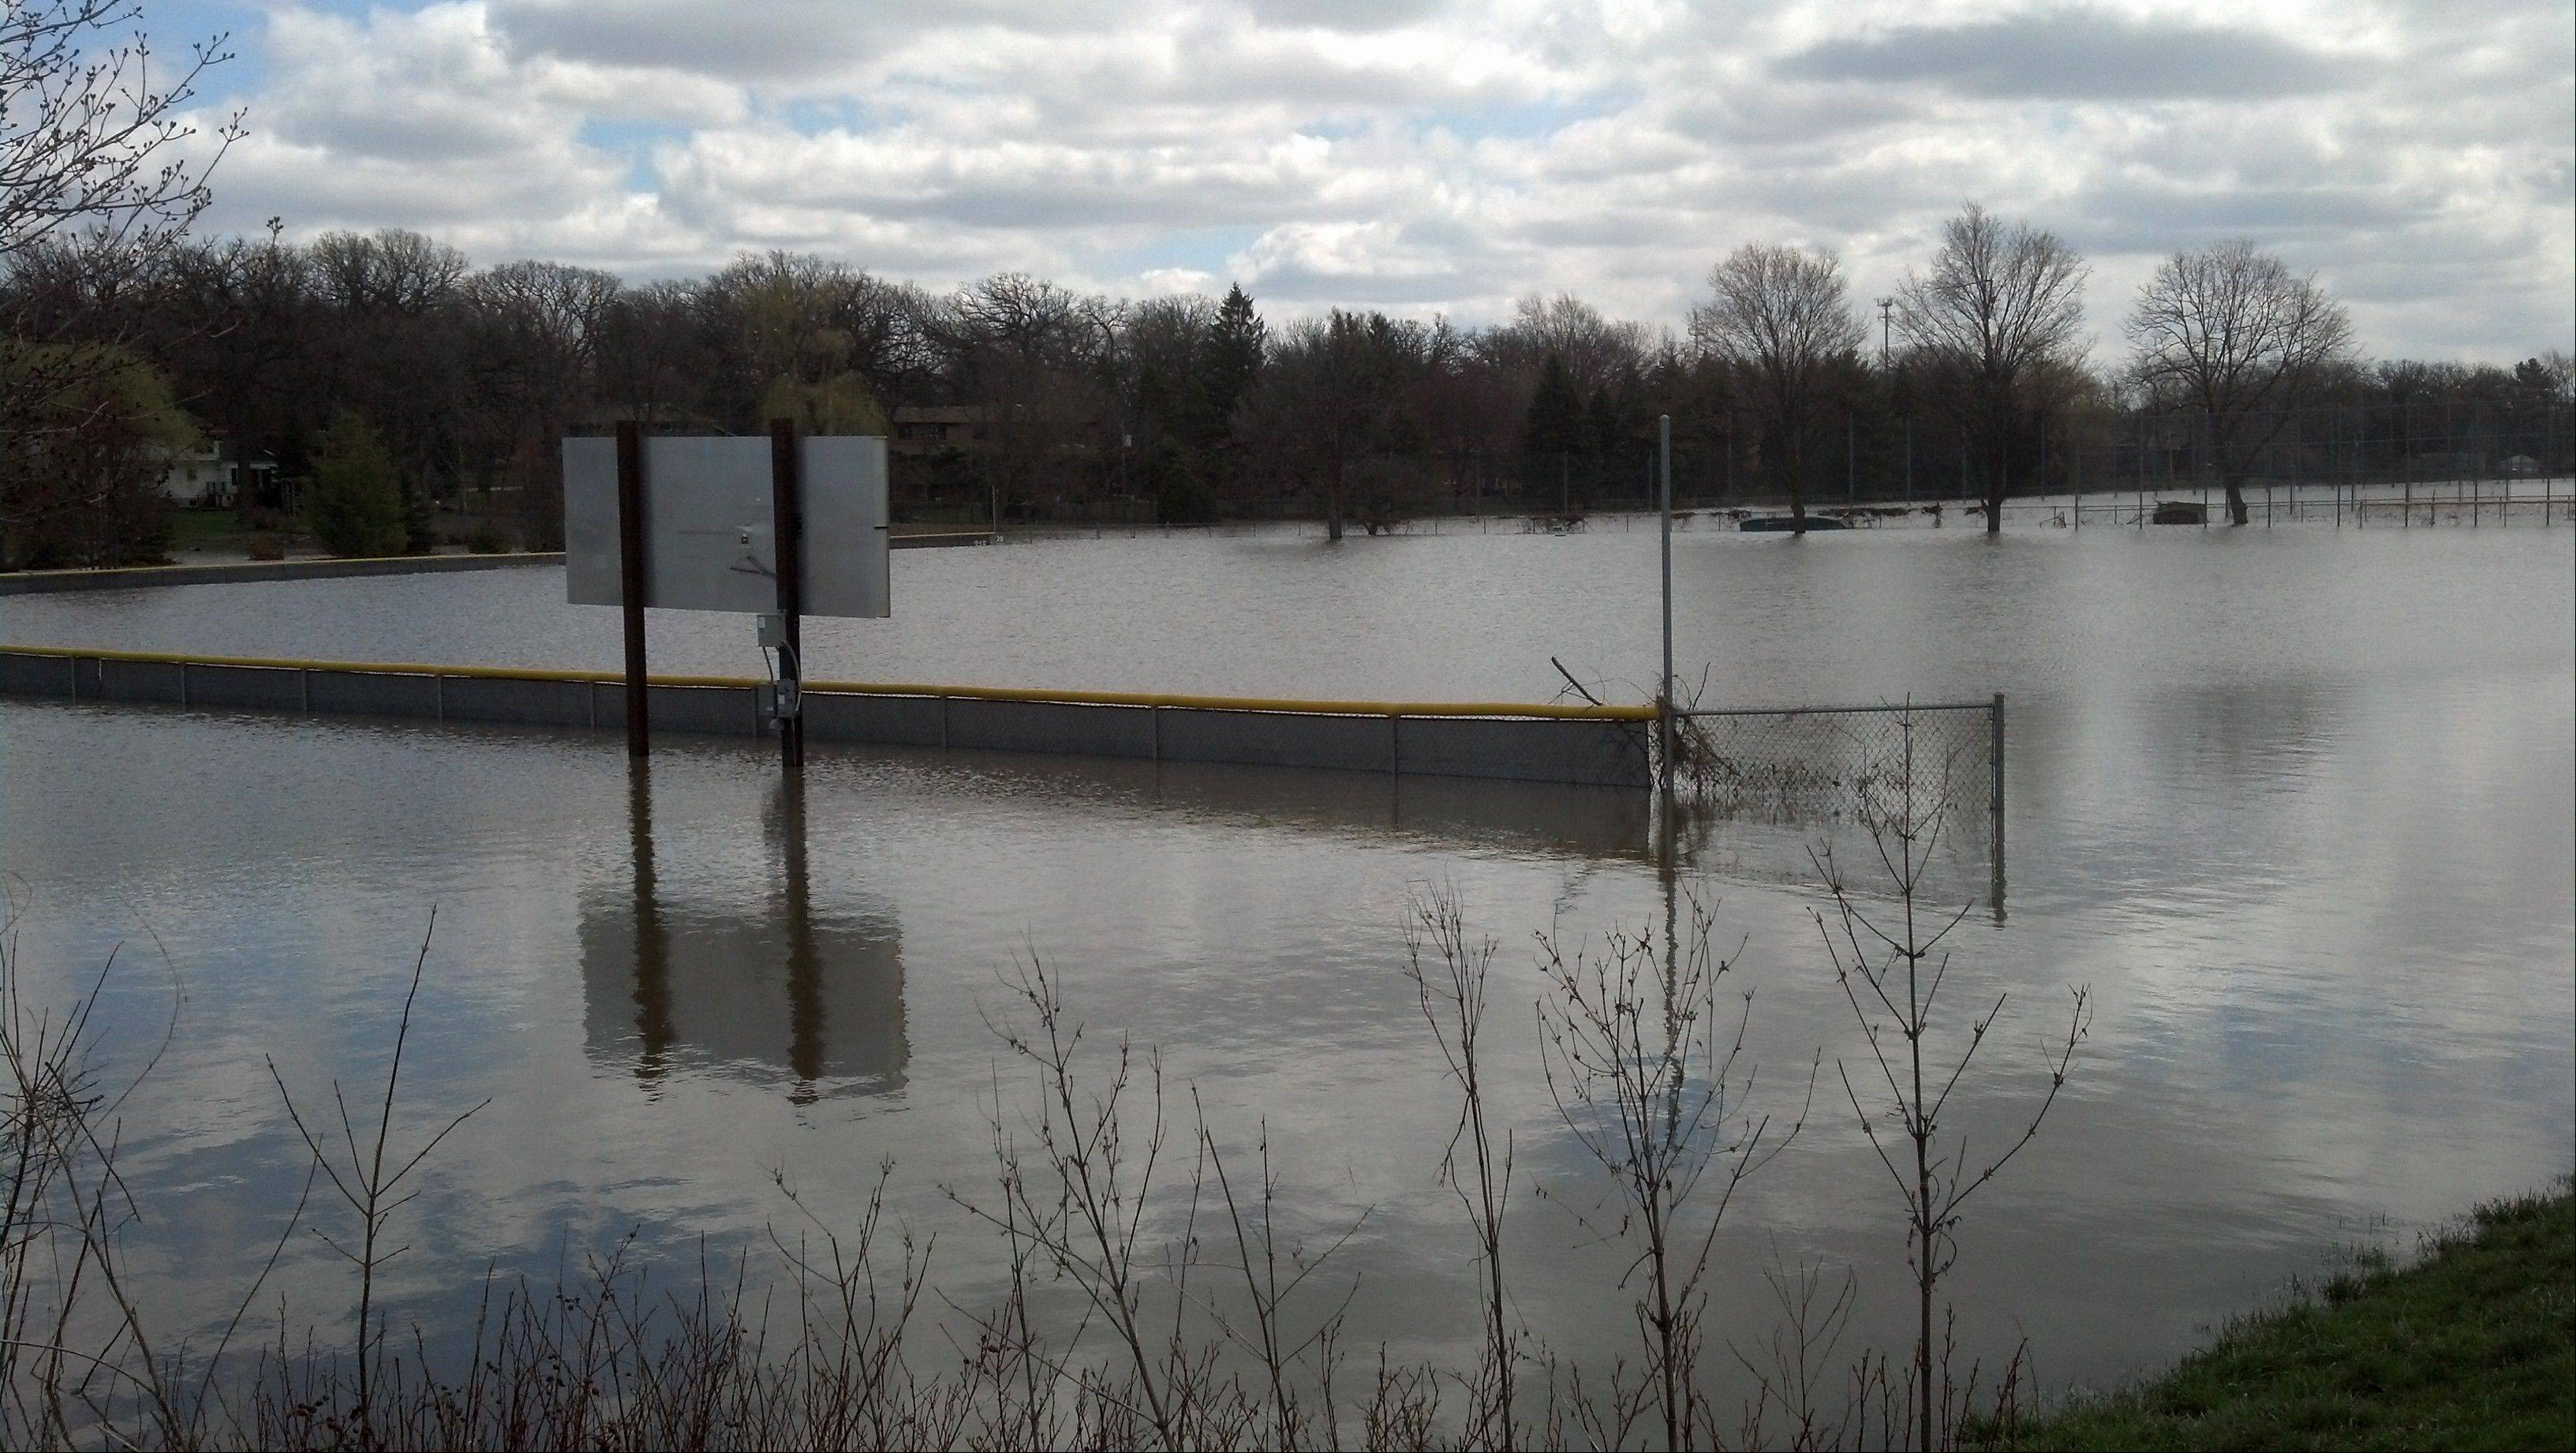 Lisle's field still a water hazard